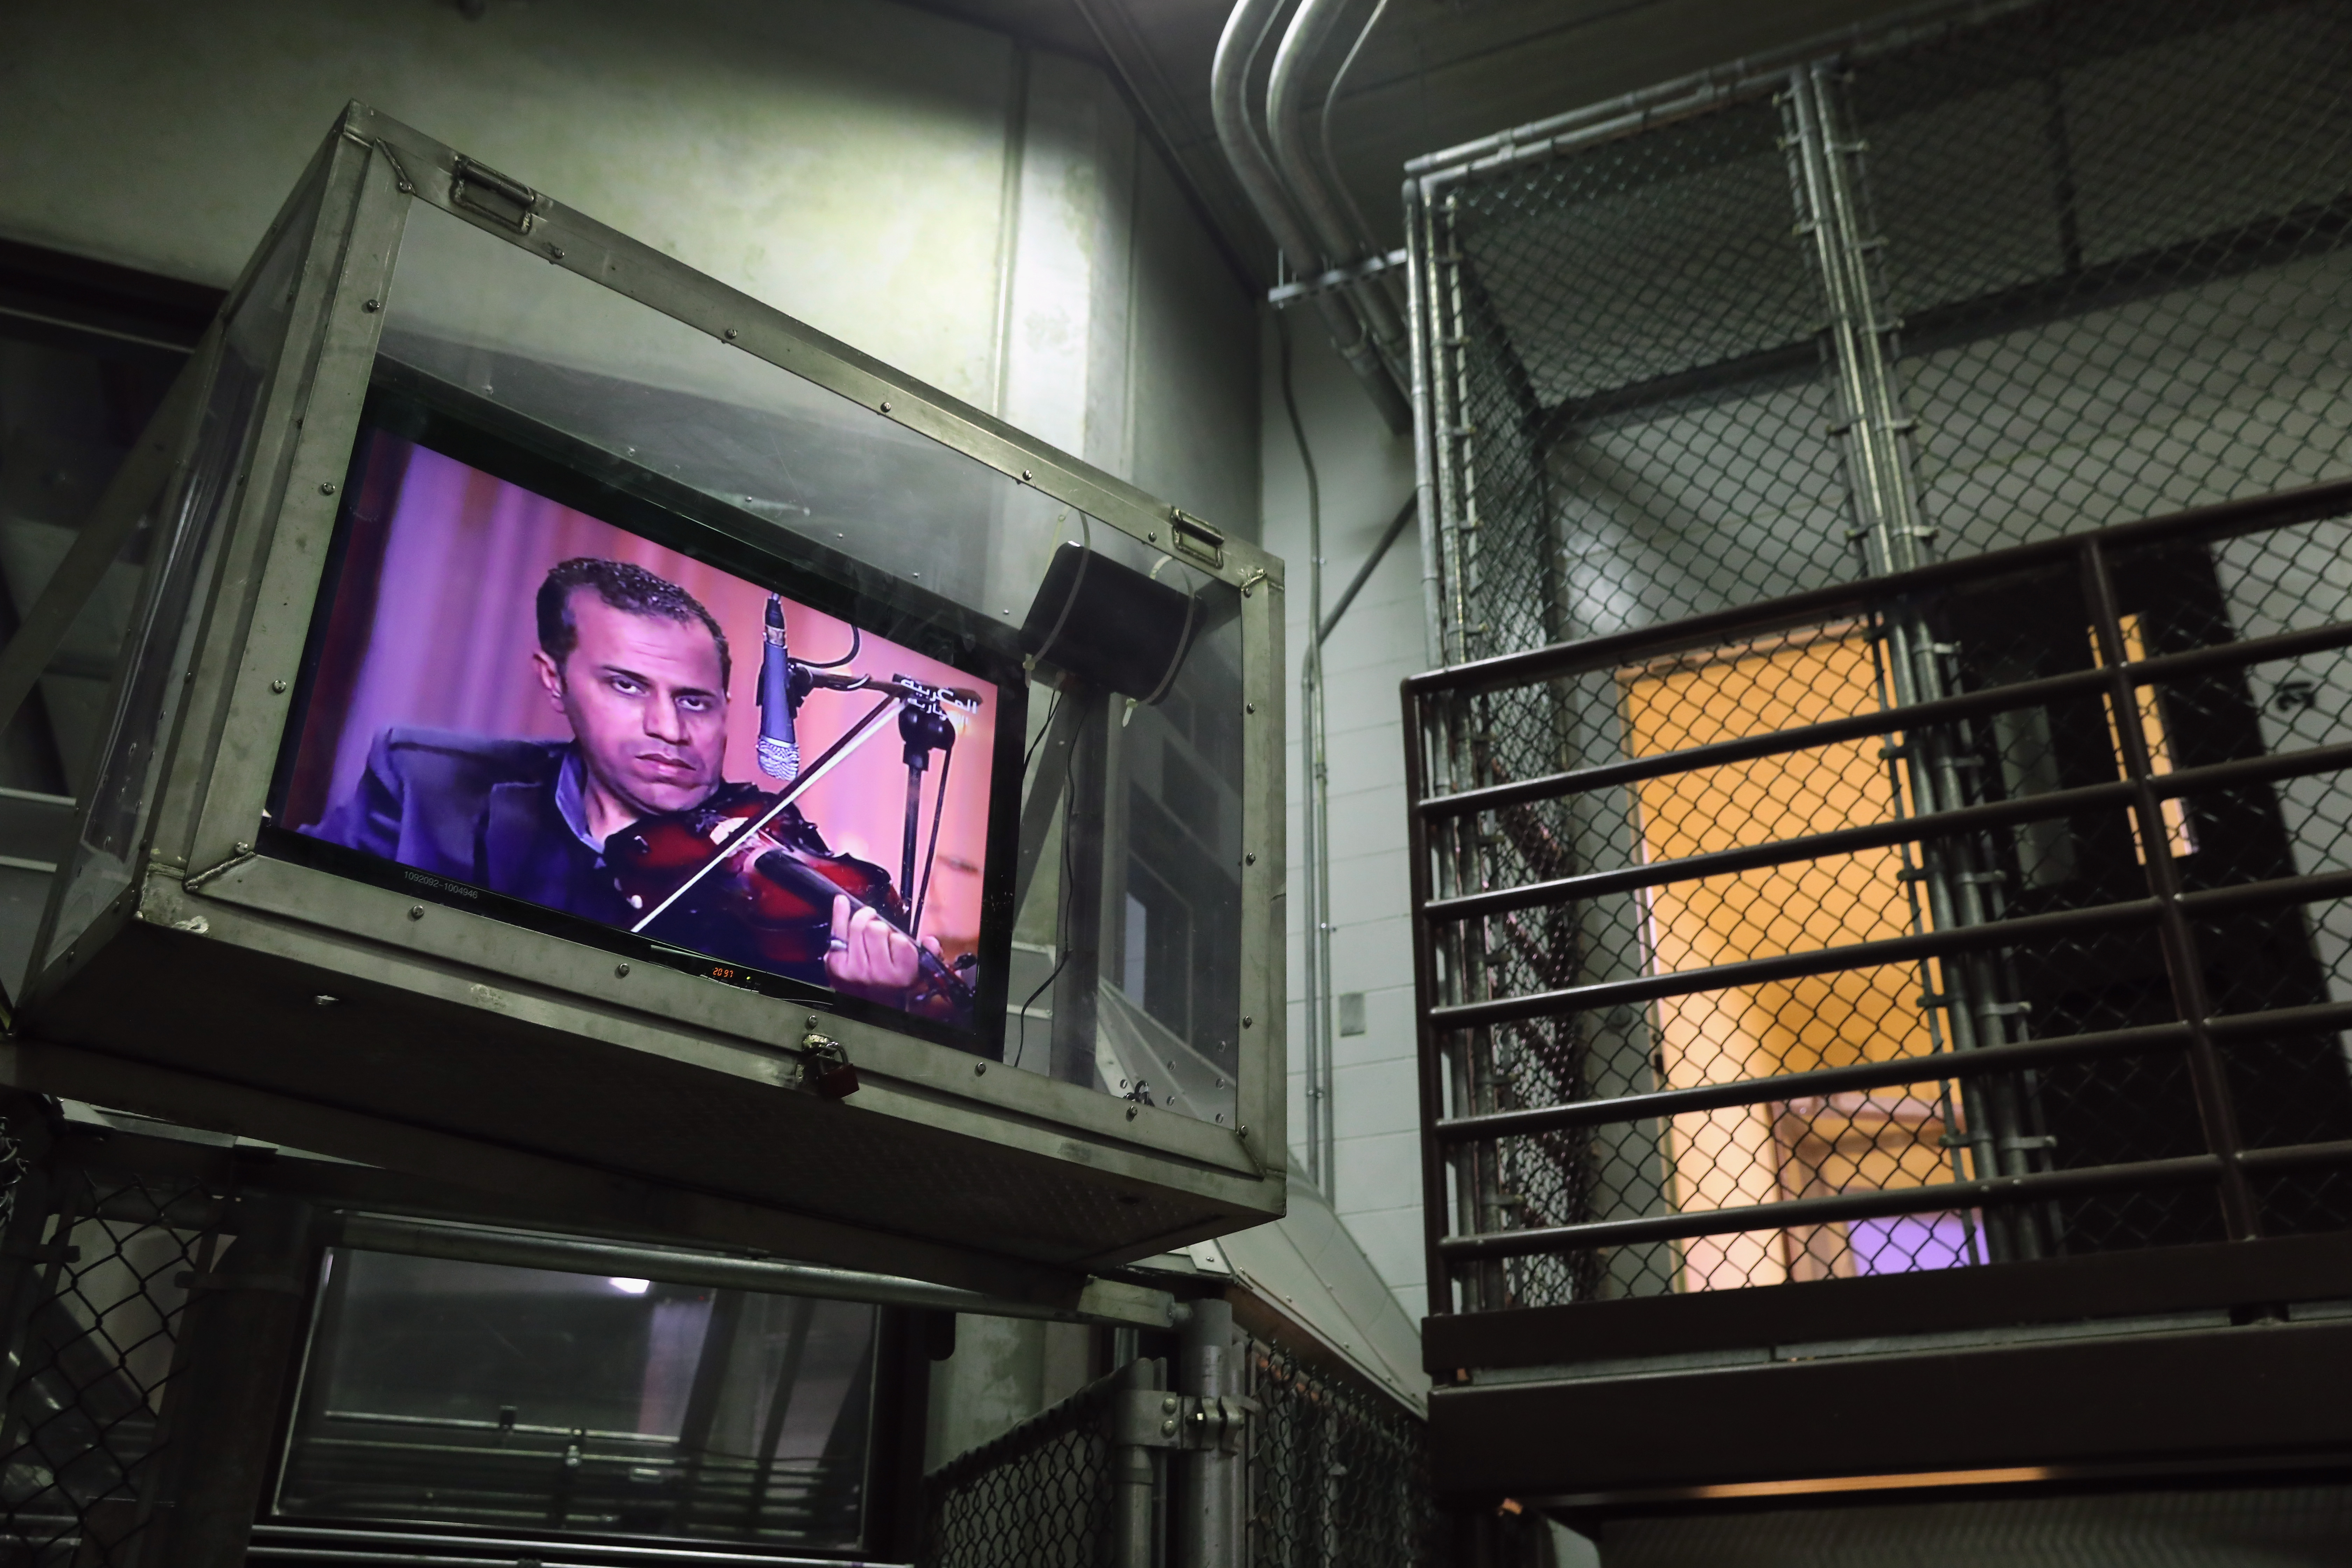 The following Images have been reviewed by the U.S. Military prior to transmission.                                                                                             A television, protected by plexiglass, plays an Arabic music show at the maximum security detention center known as Gitmo at the U.S. Naval Station in Guantanamo Bay, Cuba, on Oct. 22, 2016. The U.S. military's Joint Task Force Guantanamo is still holding 60 detainees at the prison, down from a previous total of 780. On his second day in office in 2008 President Barack Obama issued an executive order to close the prison, which has failed because of political opposition in the U.S.